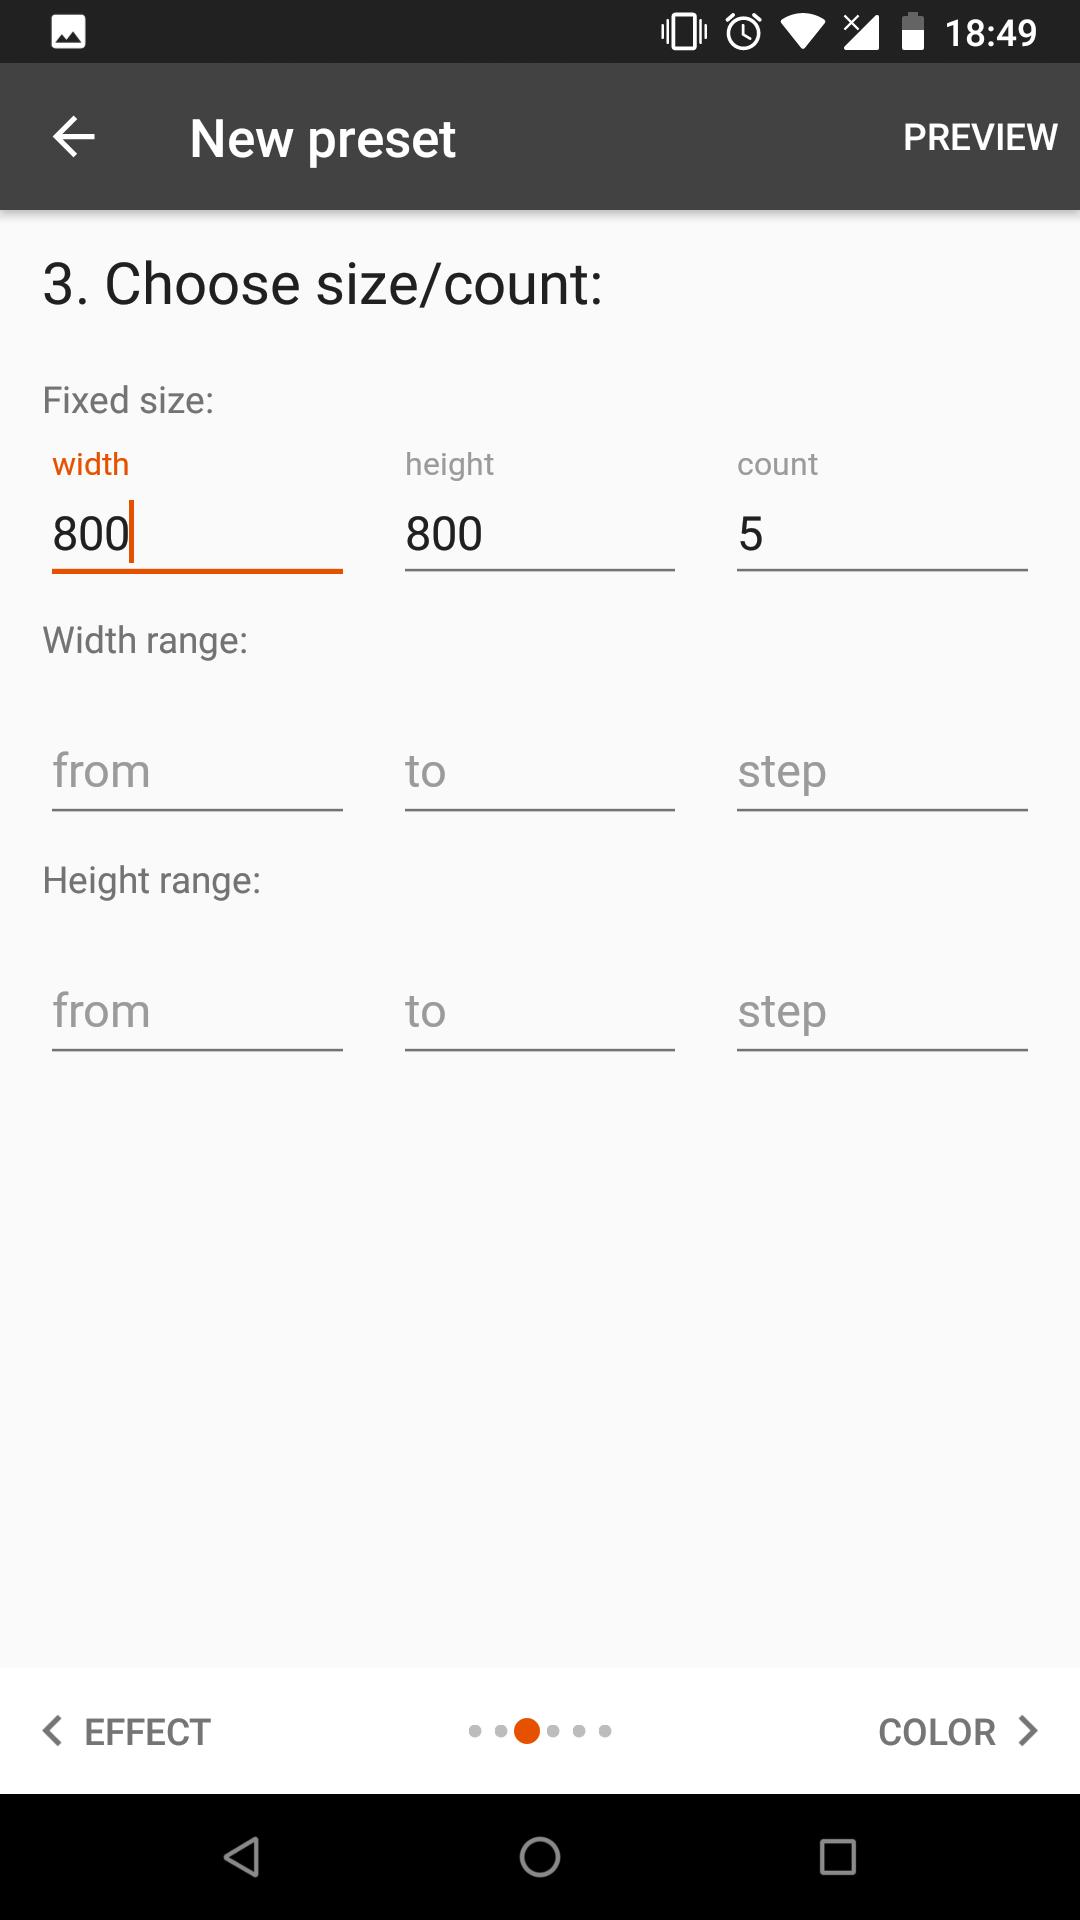 Random Image Generator for Android - APK Download